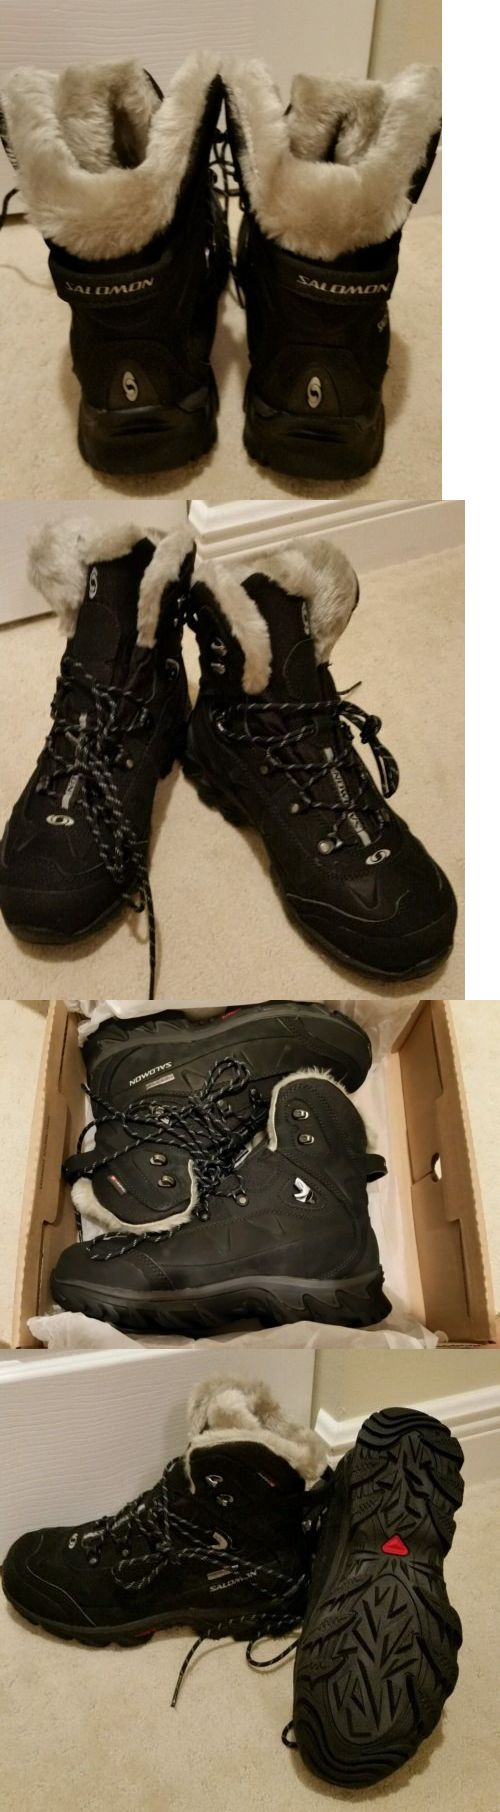 Womens 181393: Salomon Waterproof Nytro Wp W Womens Hikers Black Climatherm Winter Boots Us 7 -> BUY IT NOW ONLY: $75 on eBay!